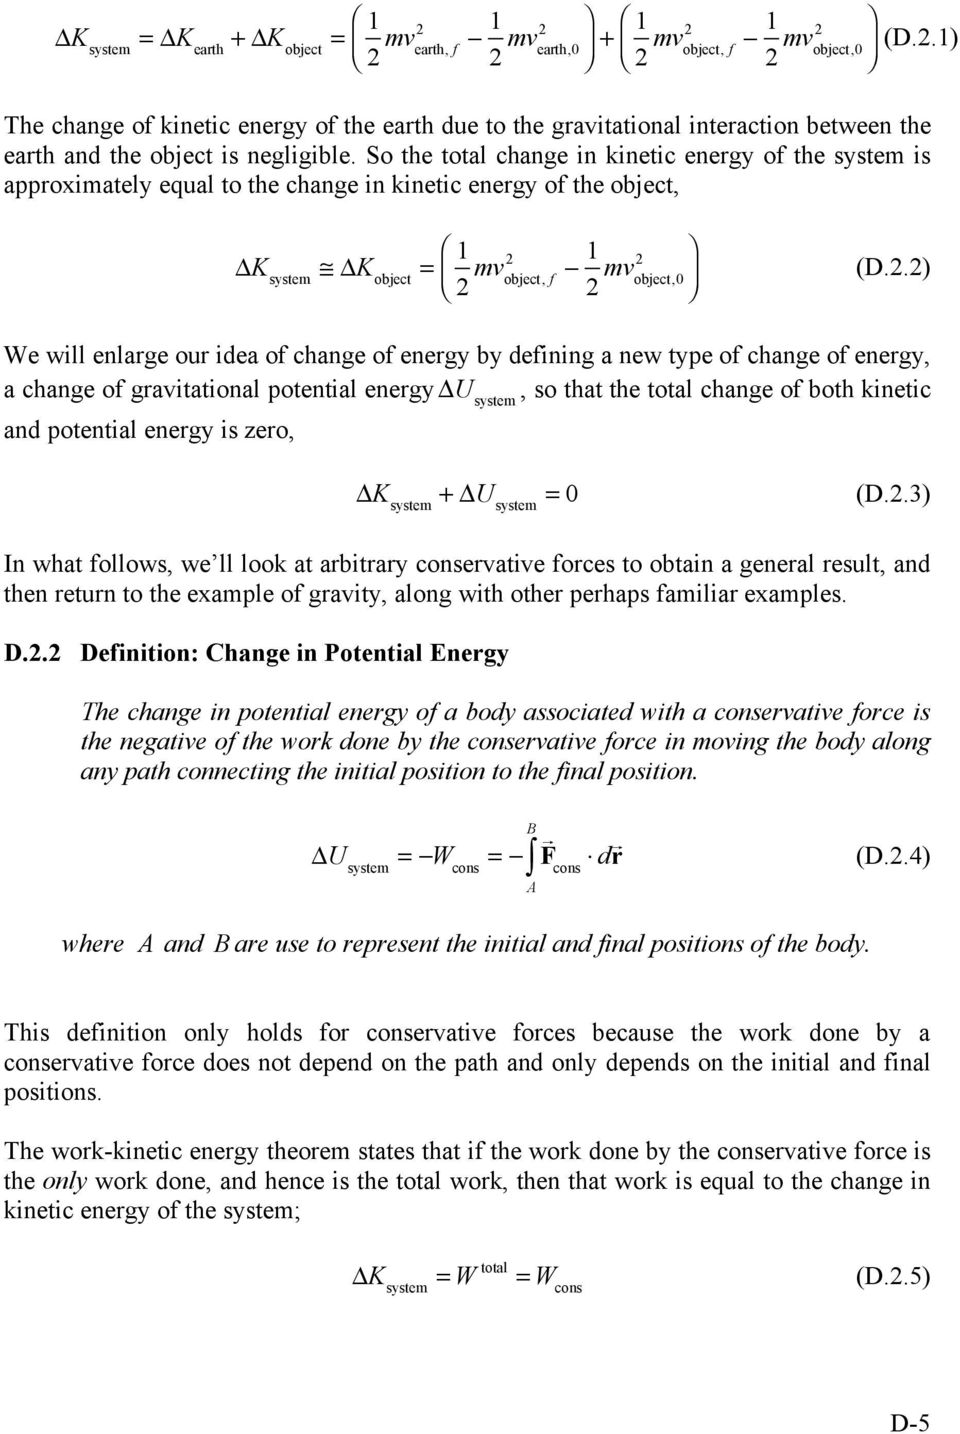 mv 2 object, f % & # 1 2 mv 2 object,0 ' ( ) (D.2.2) We will enlarge our idea of change of energy by defining a new type of change of energy, a change of gravitational potential energy U system, so